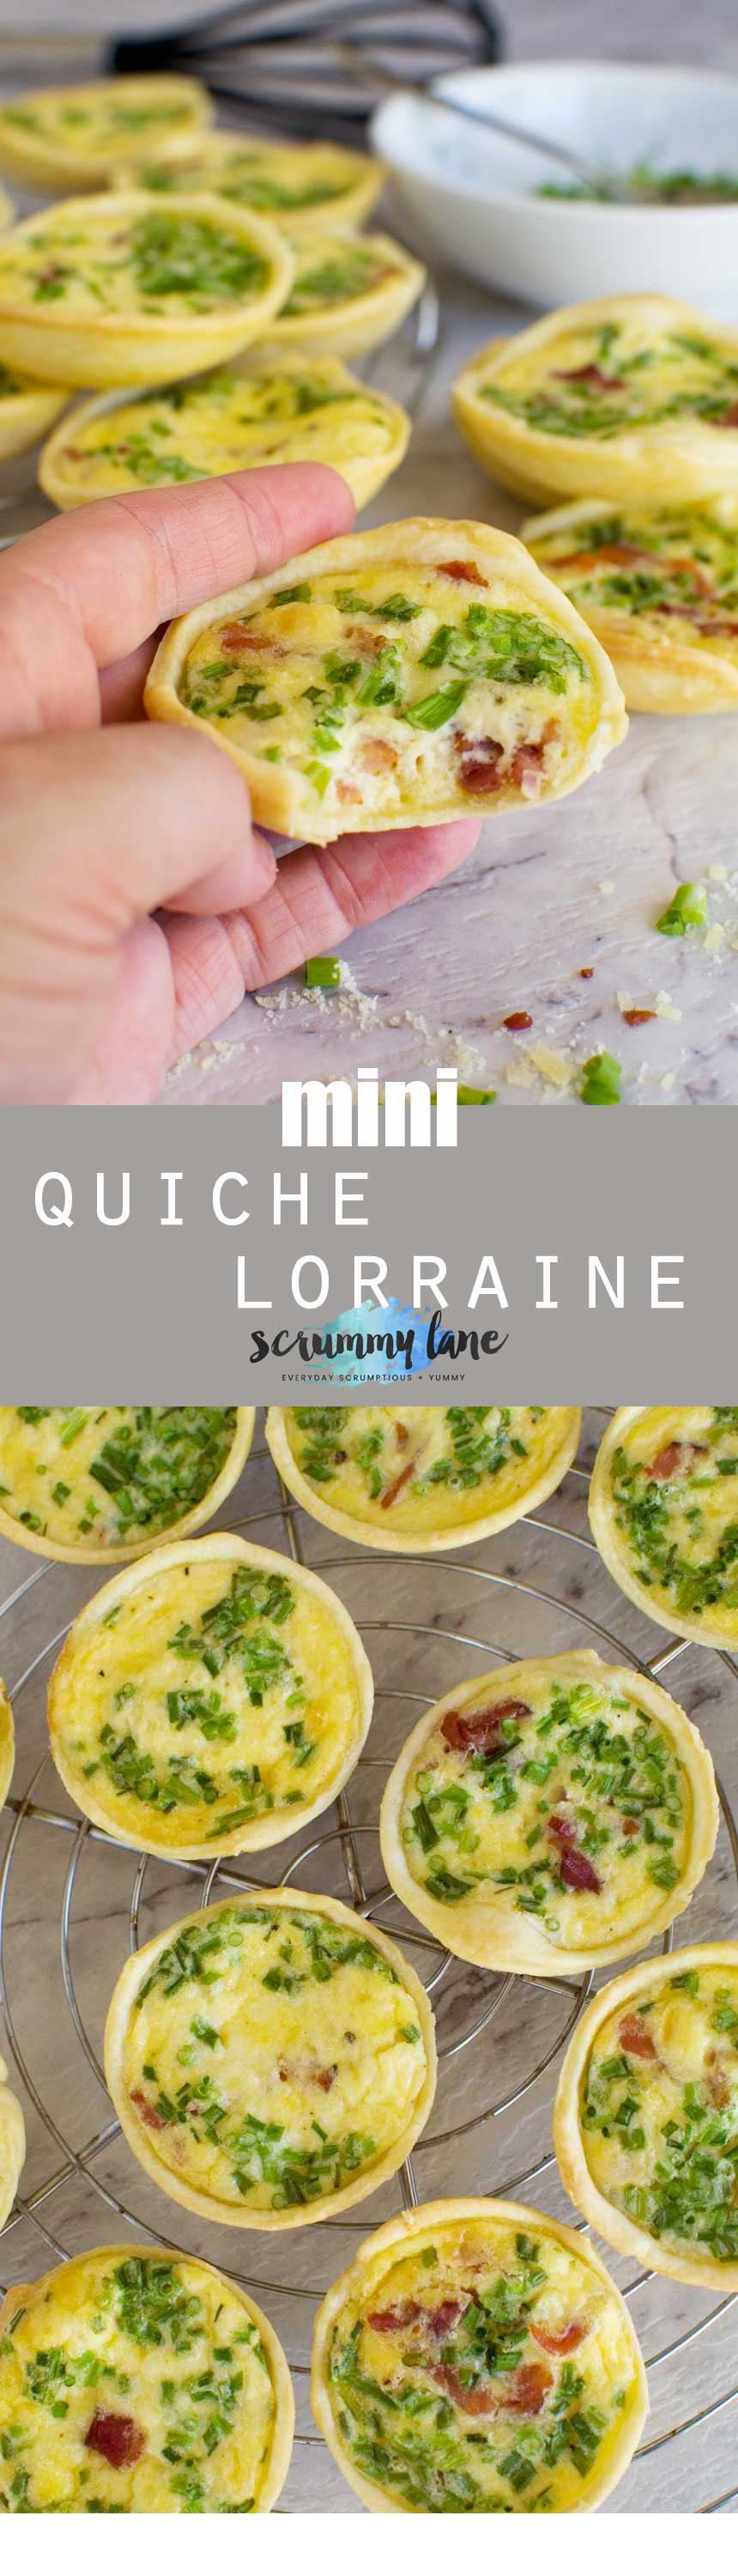 There are never any of these mini quiche lorraine left at the party. Stash some away in the freezer. Only 6 ingredients - and no pre baking of the pastry!